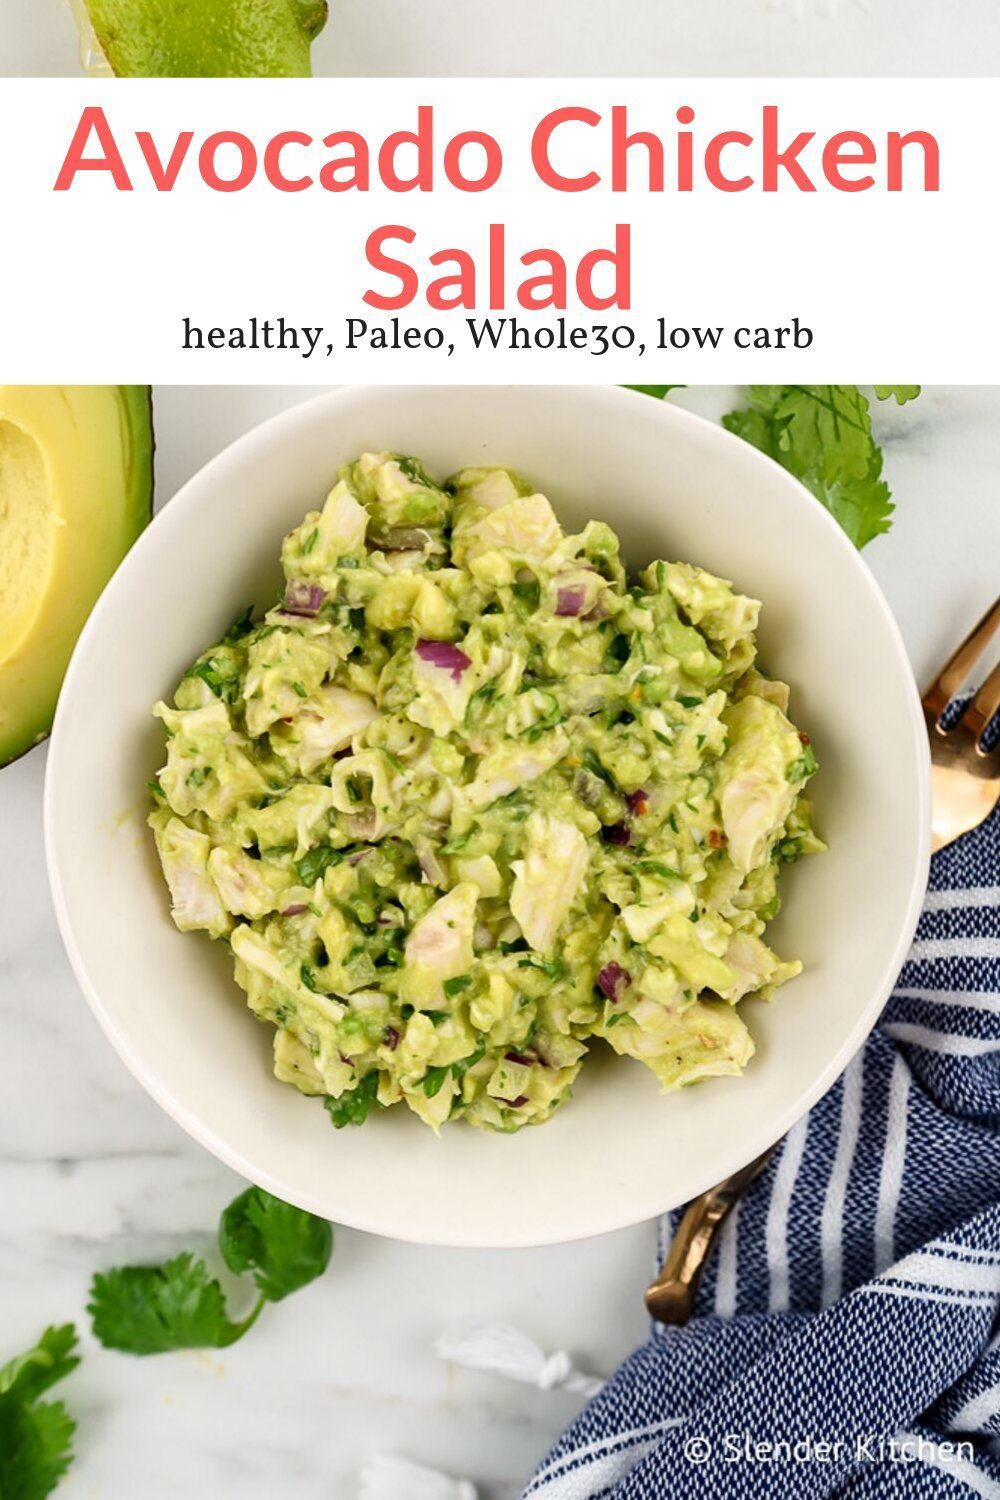 Avocado Chicken Salad - Slender Kitchen - #avocado #chicken #kitchen #salad #slender -   Informations About Avocado Chicken Salad - Slender Kitchen - #avocado #chicken #kitchen #salad #sle... Pin  You can easily use my profile to examine different pin types. Avocado Chicken Salad - Slender Kitchen - #avocado #chicken #kitchen #salad #sle... pins are as aesthetic and useful as you can use them for decorative purposes at any time and add them... #Avocado #Chicken #Kitchen #SALAD #sle #Slender